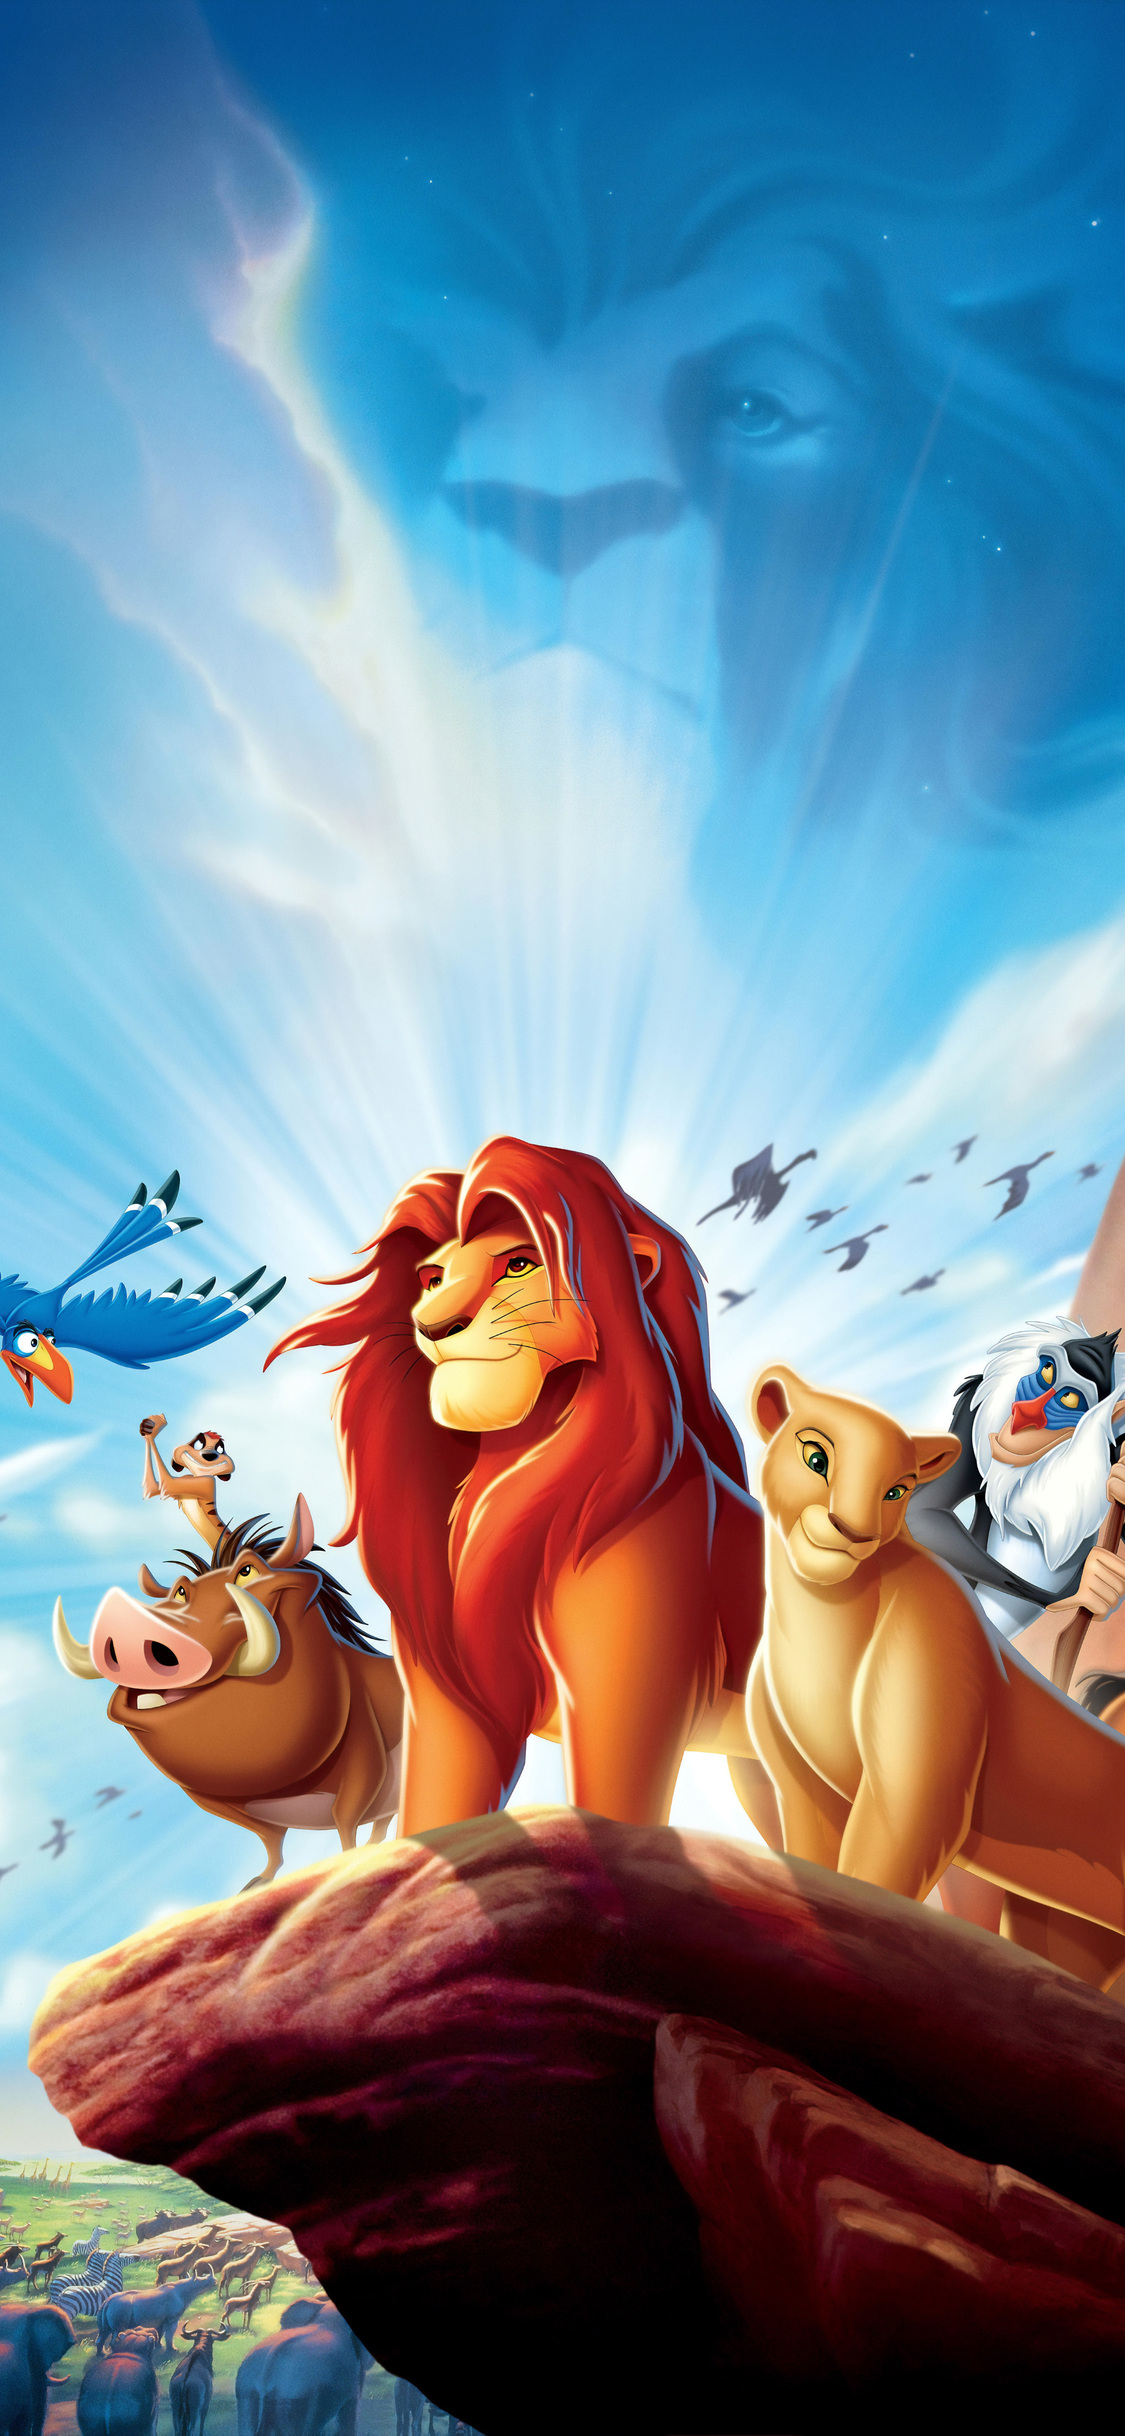 1125x2436 Lion King 1994 Iphone Xs Iphone 10 Iphone X Hd 4k